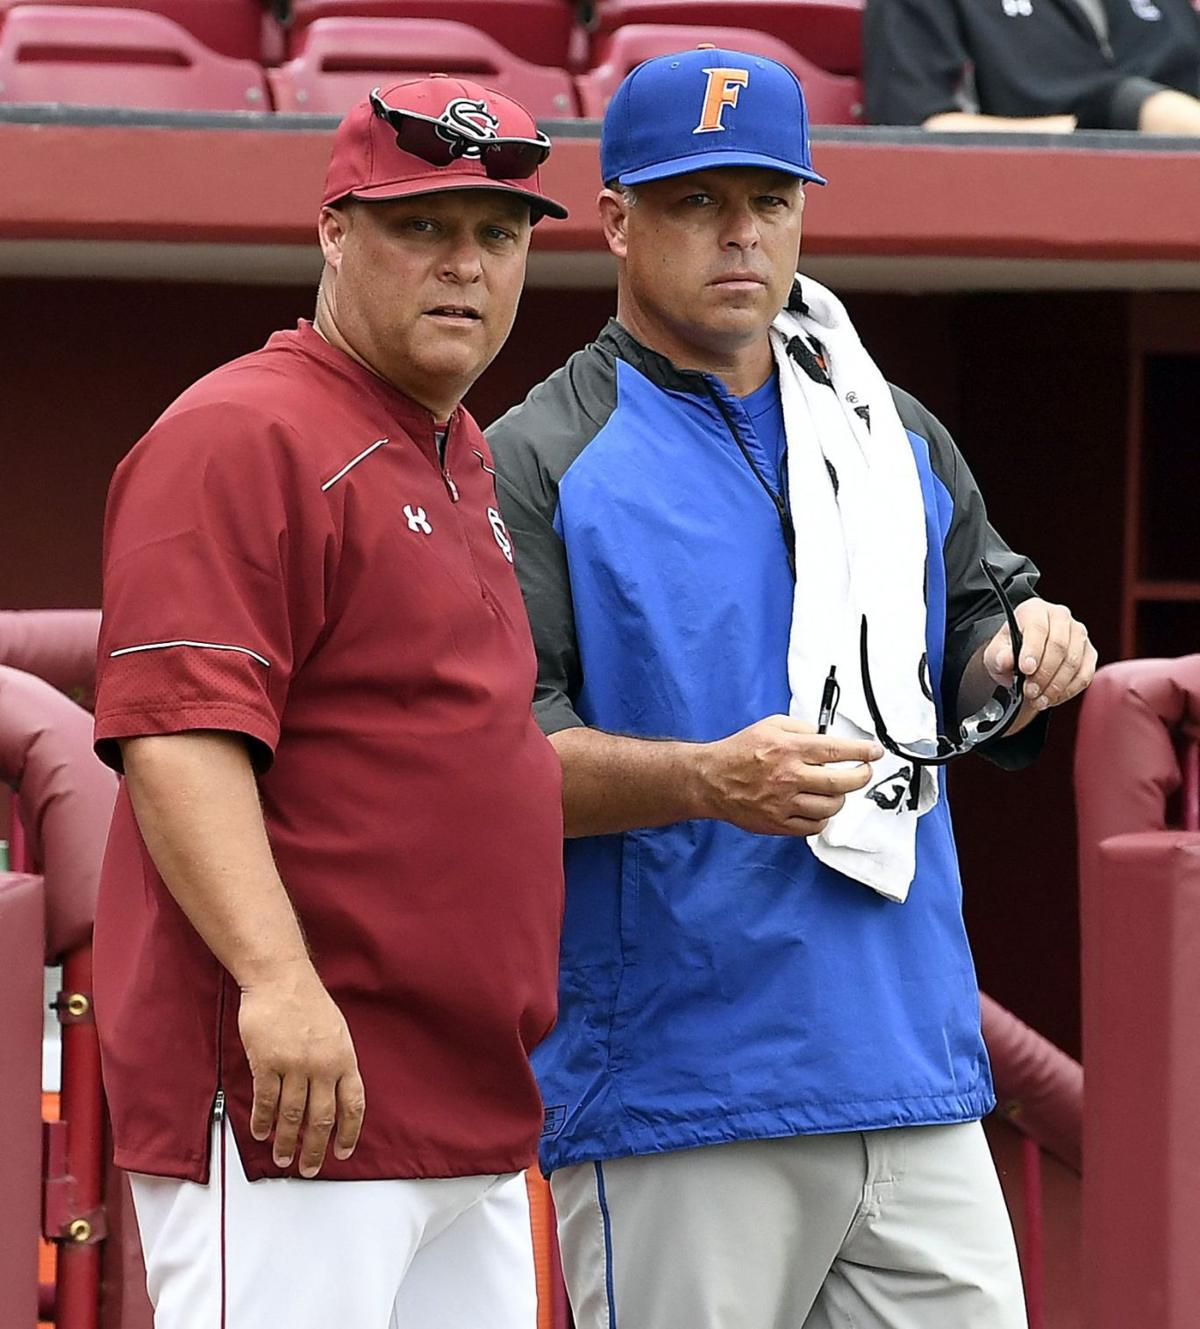 USC-Florida finale gets rained out